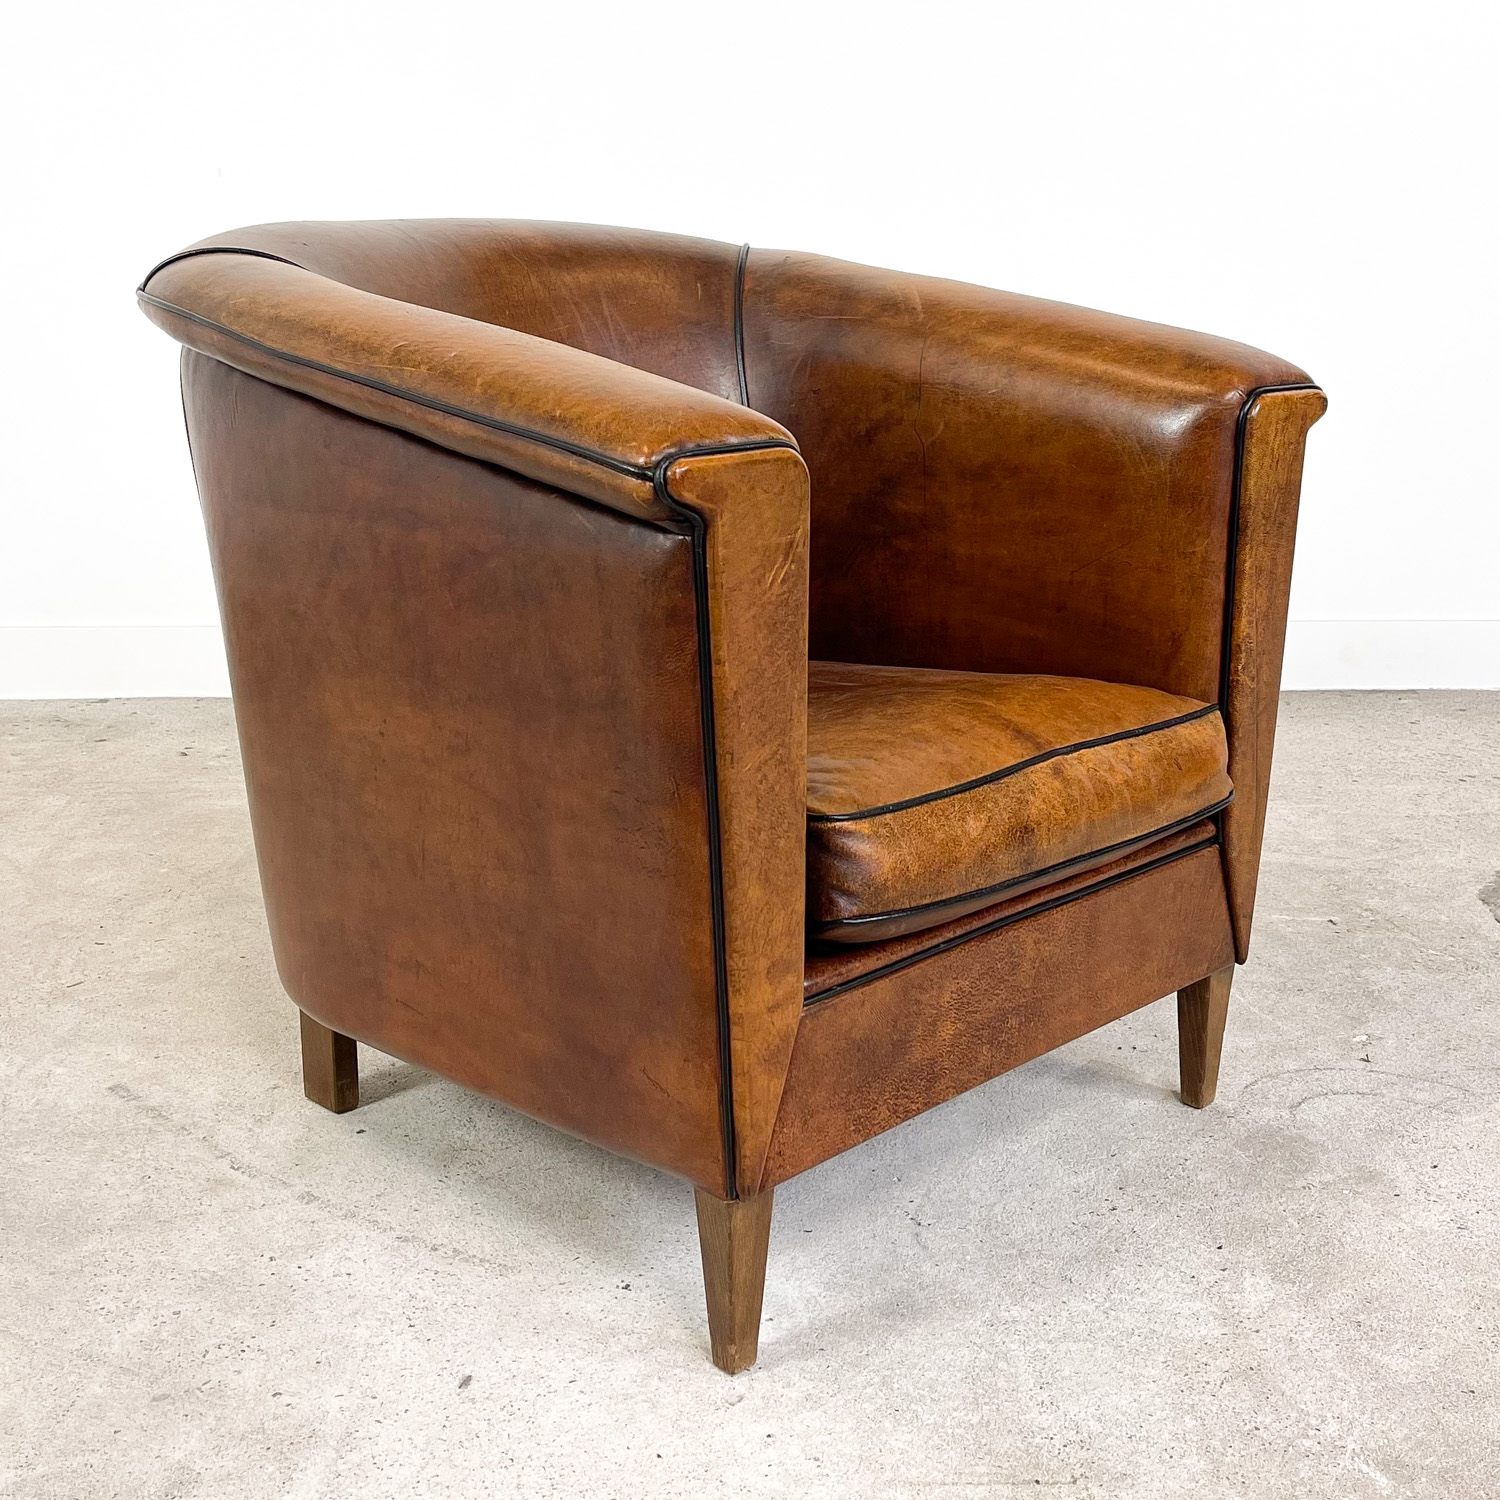 Vintage sheep leather club chair tub by Lounge Atelier